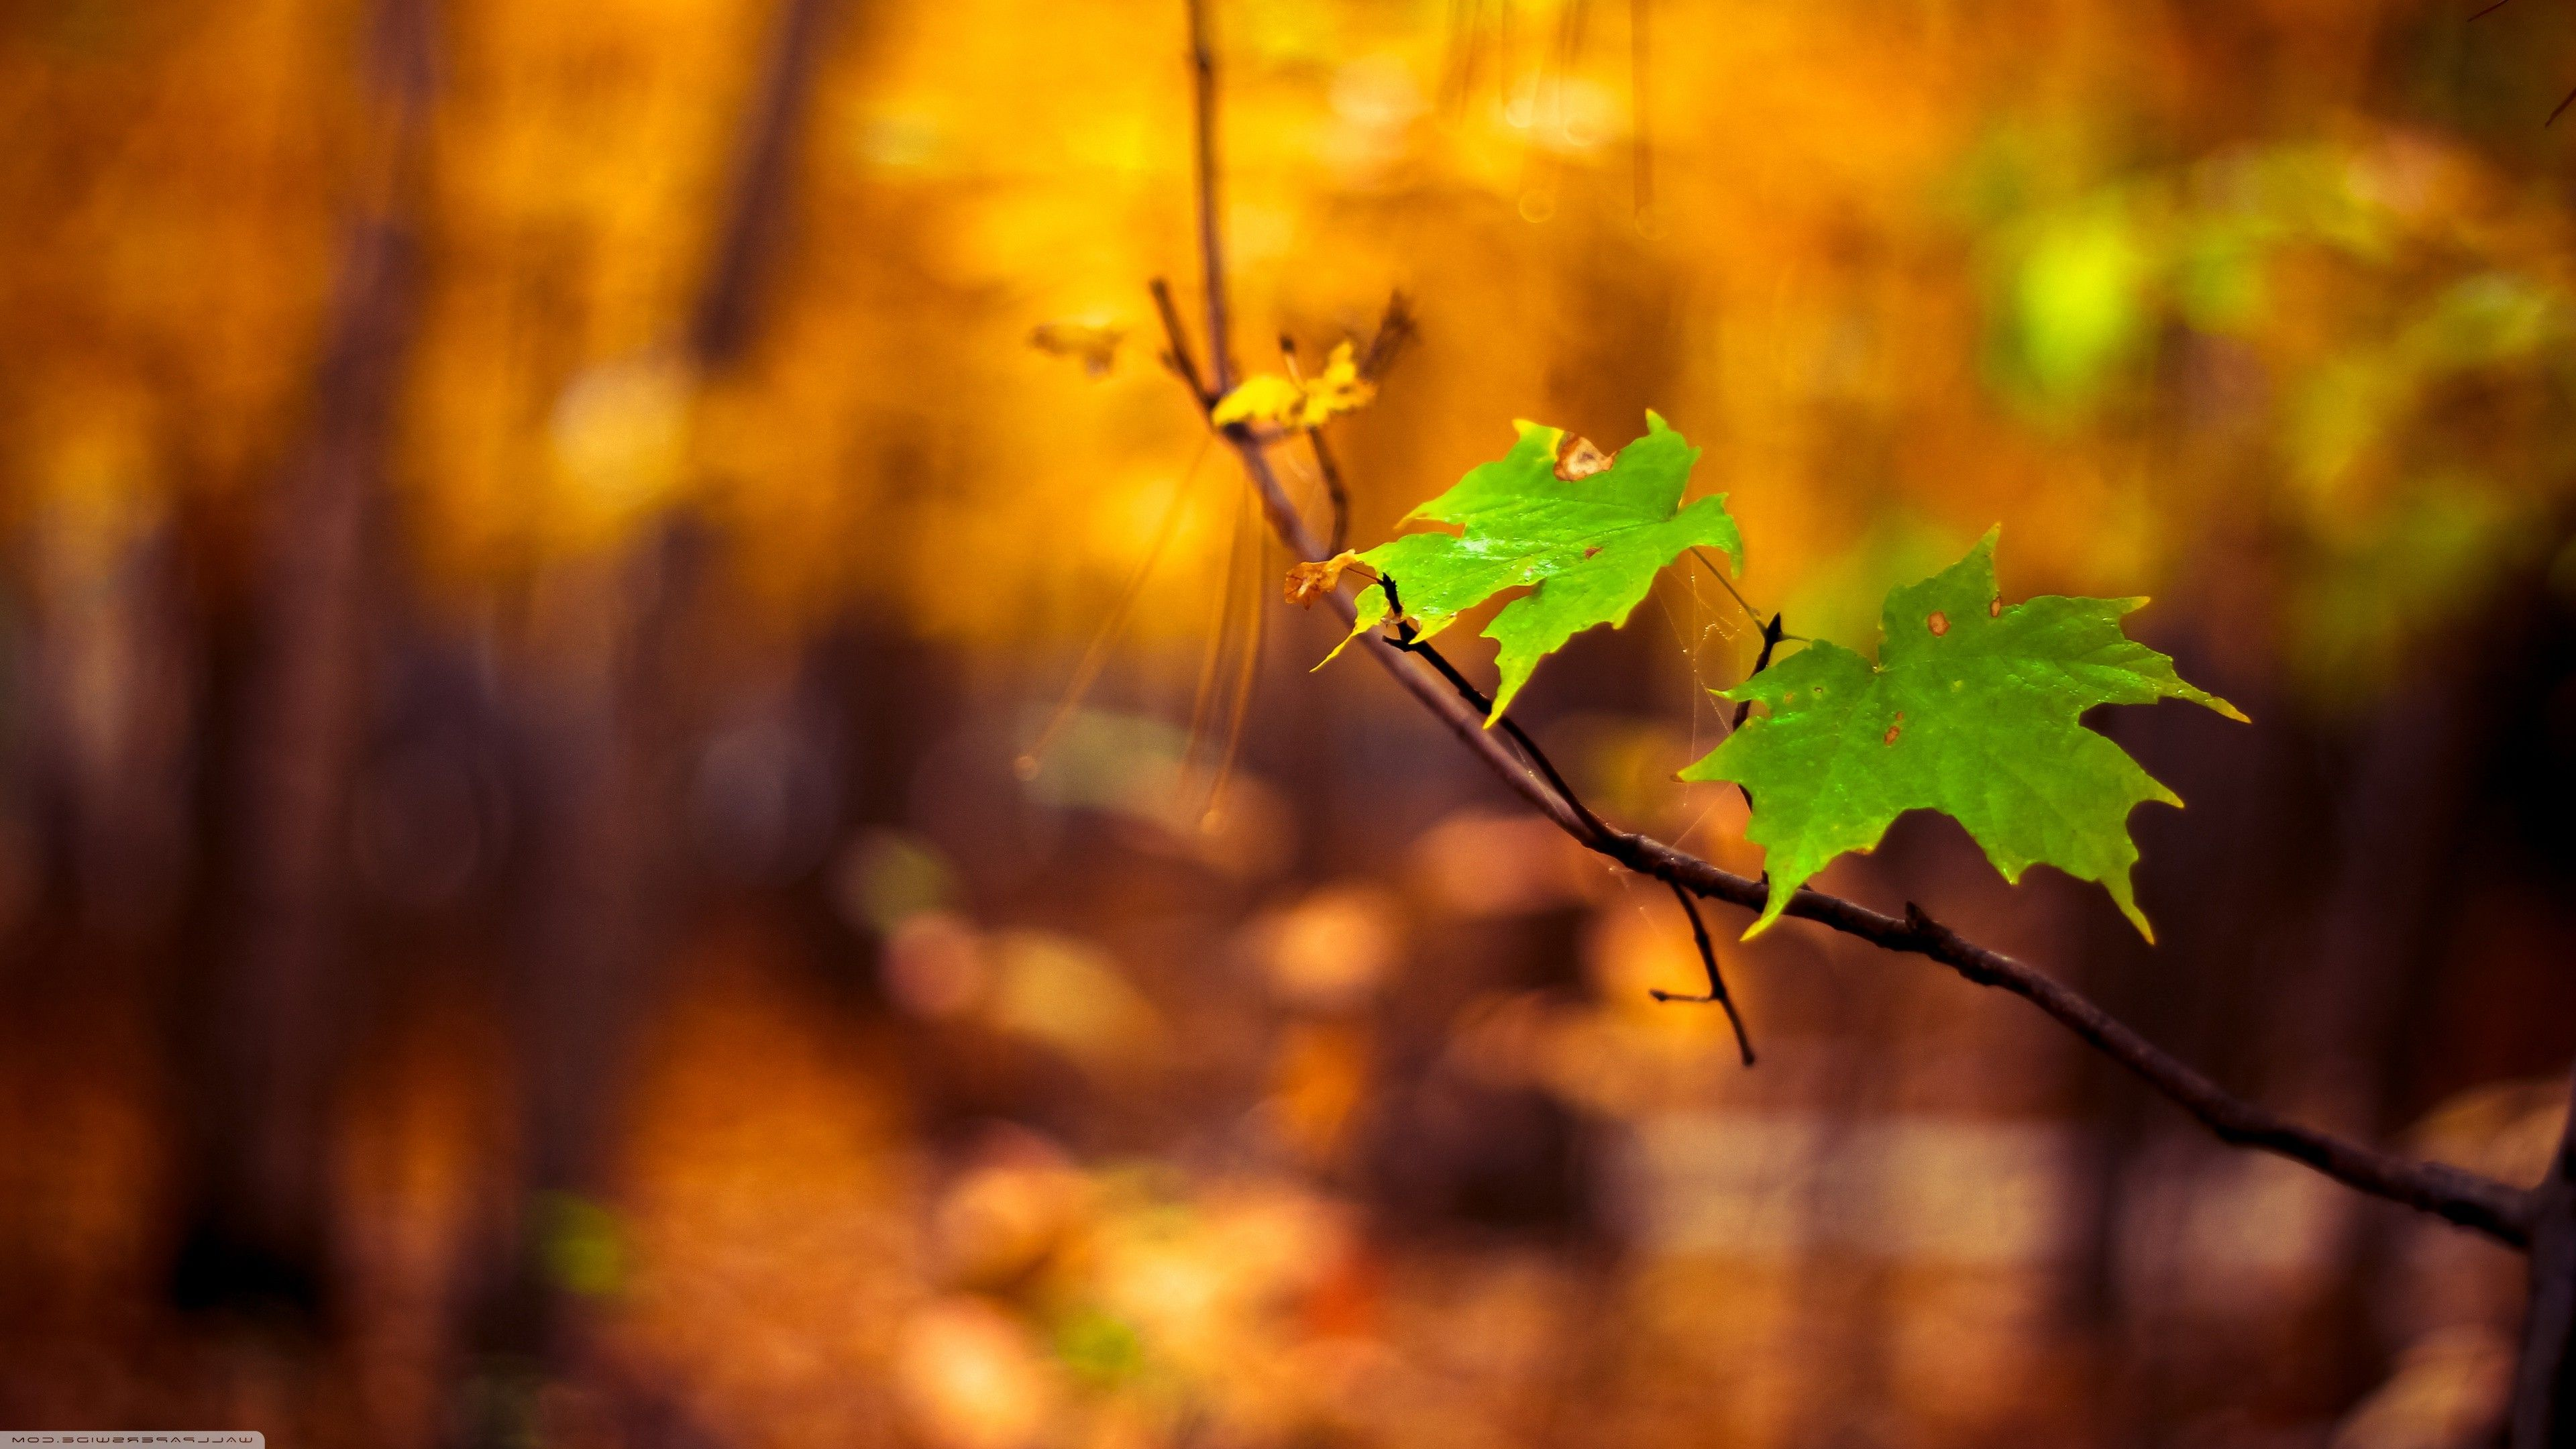 Nature Blur Wallpapers - Top Free ...